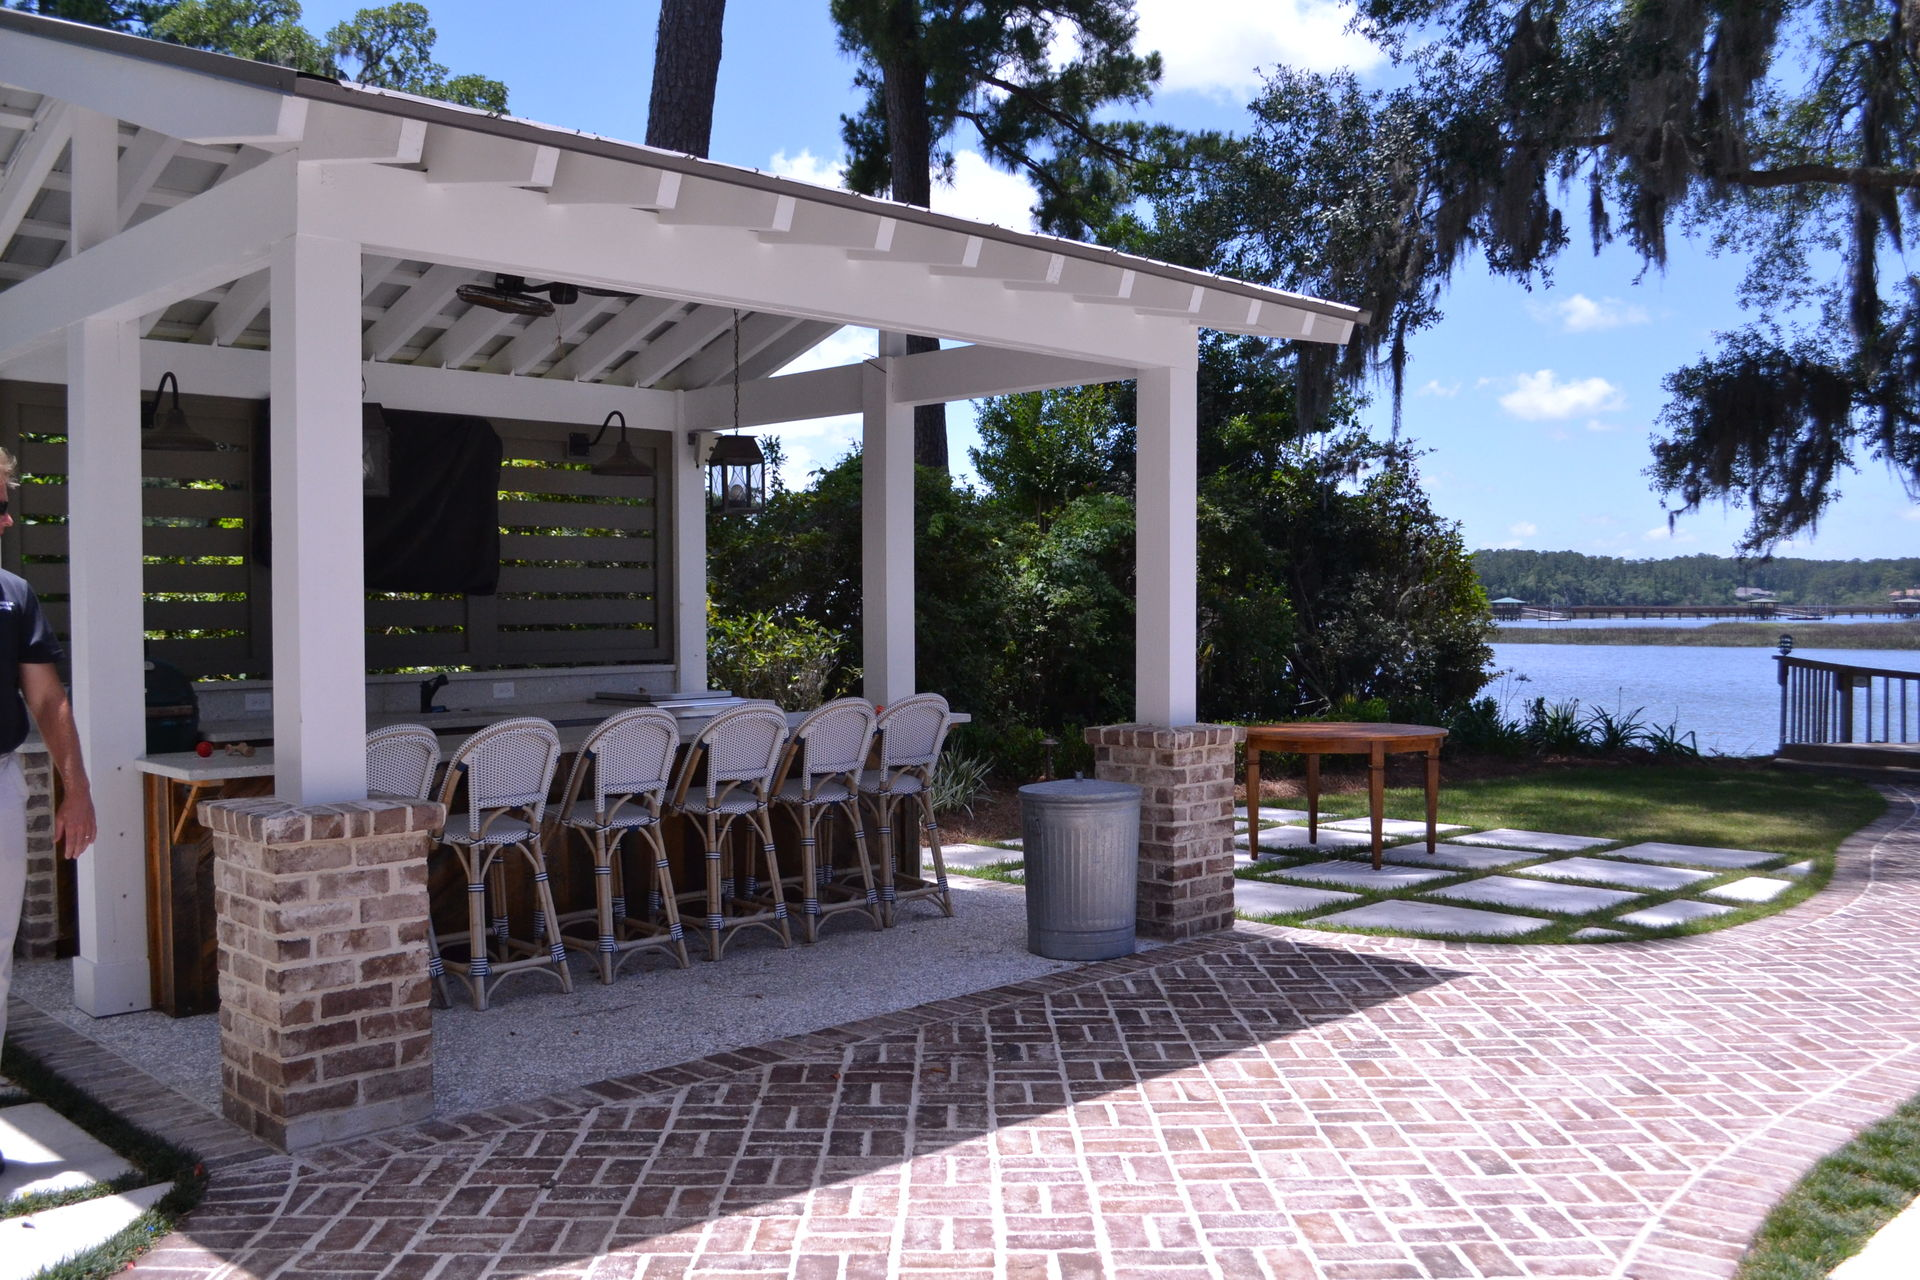 Bluffton, GA 5 Questions to Ask Your Landscaper